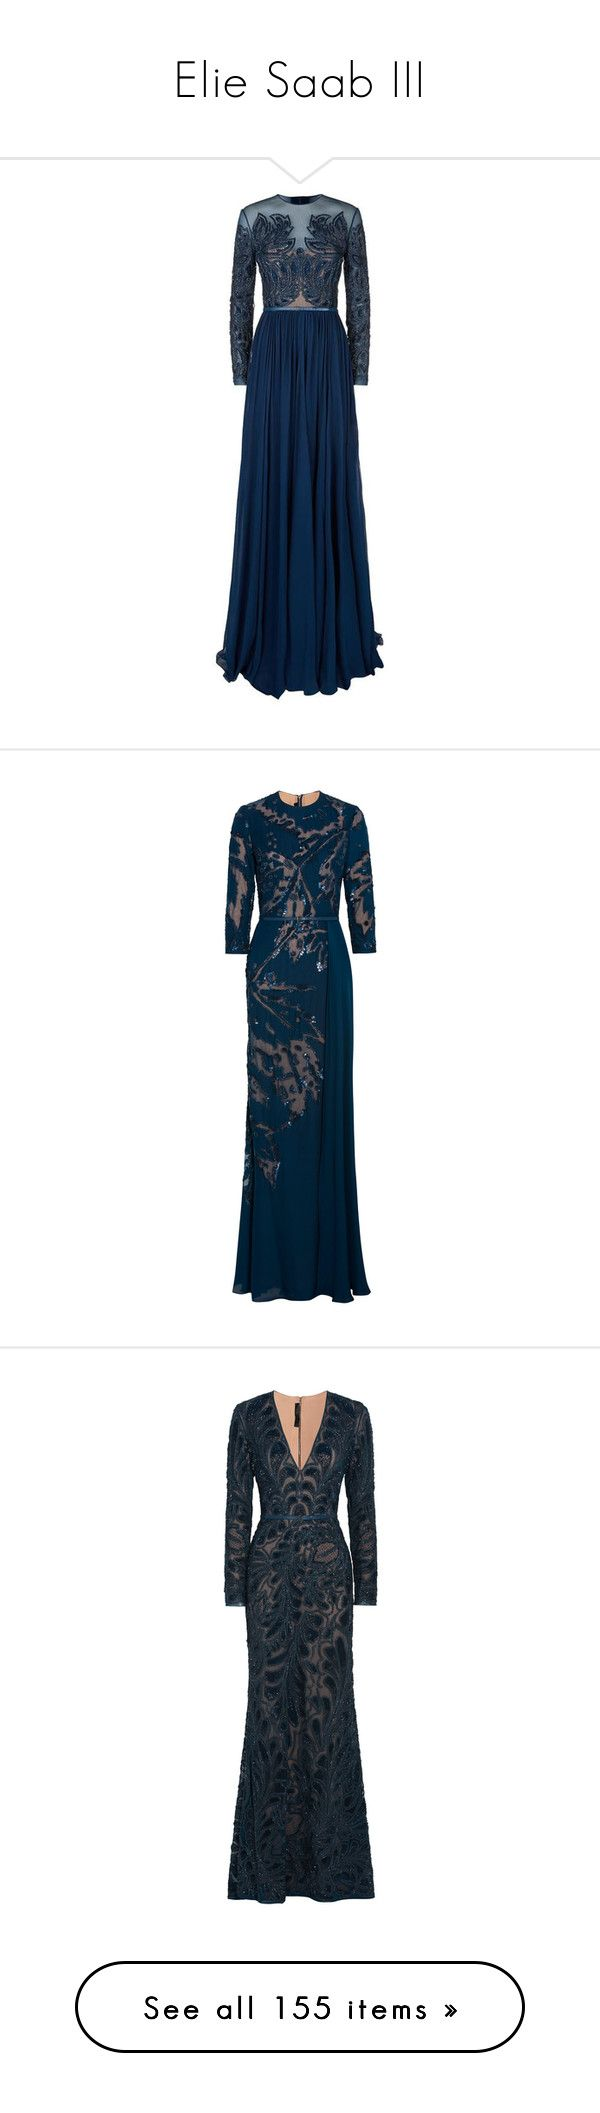 """""""Elie Saab III"""" by sakuragirl ❤ liked on Polyvore featuring dresses, gowns, gown, long dress, elie saab, robe, long silk dress, blue sequin dress, blue evening gown and blue evening dresses"""